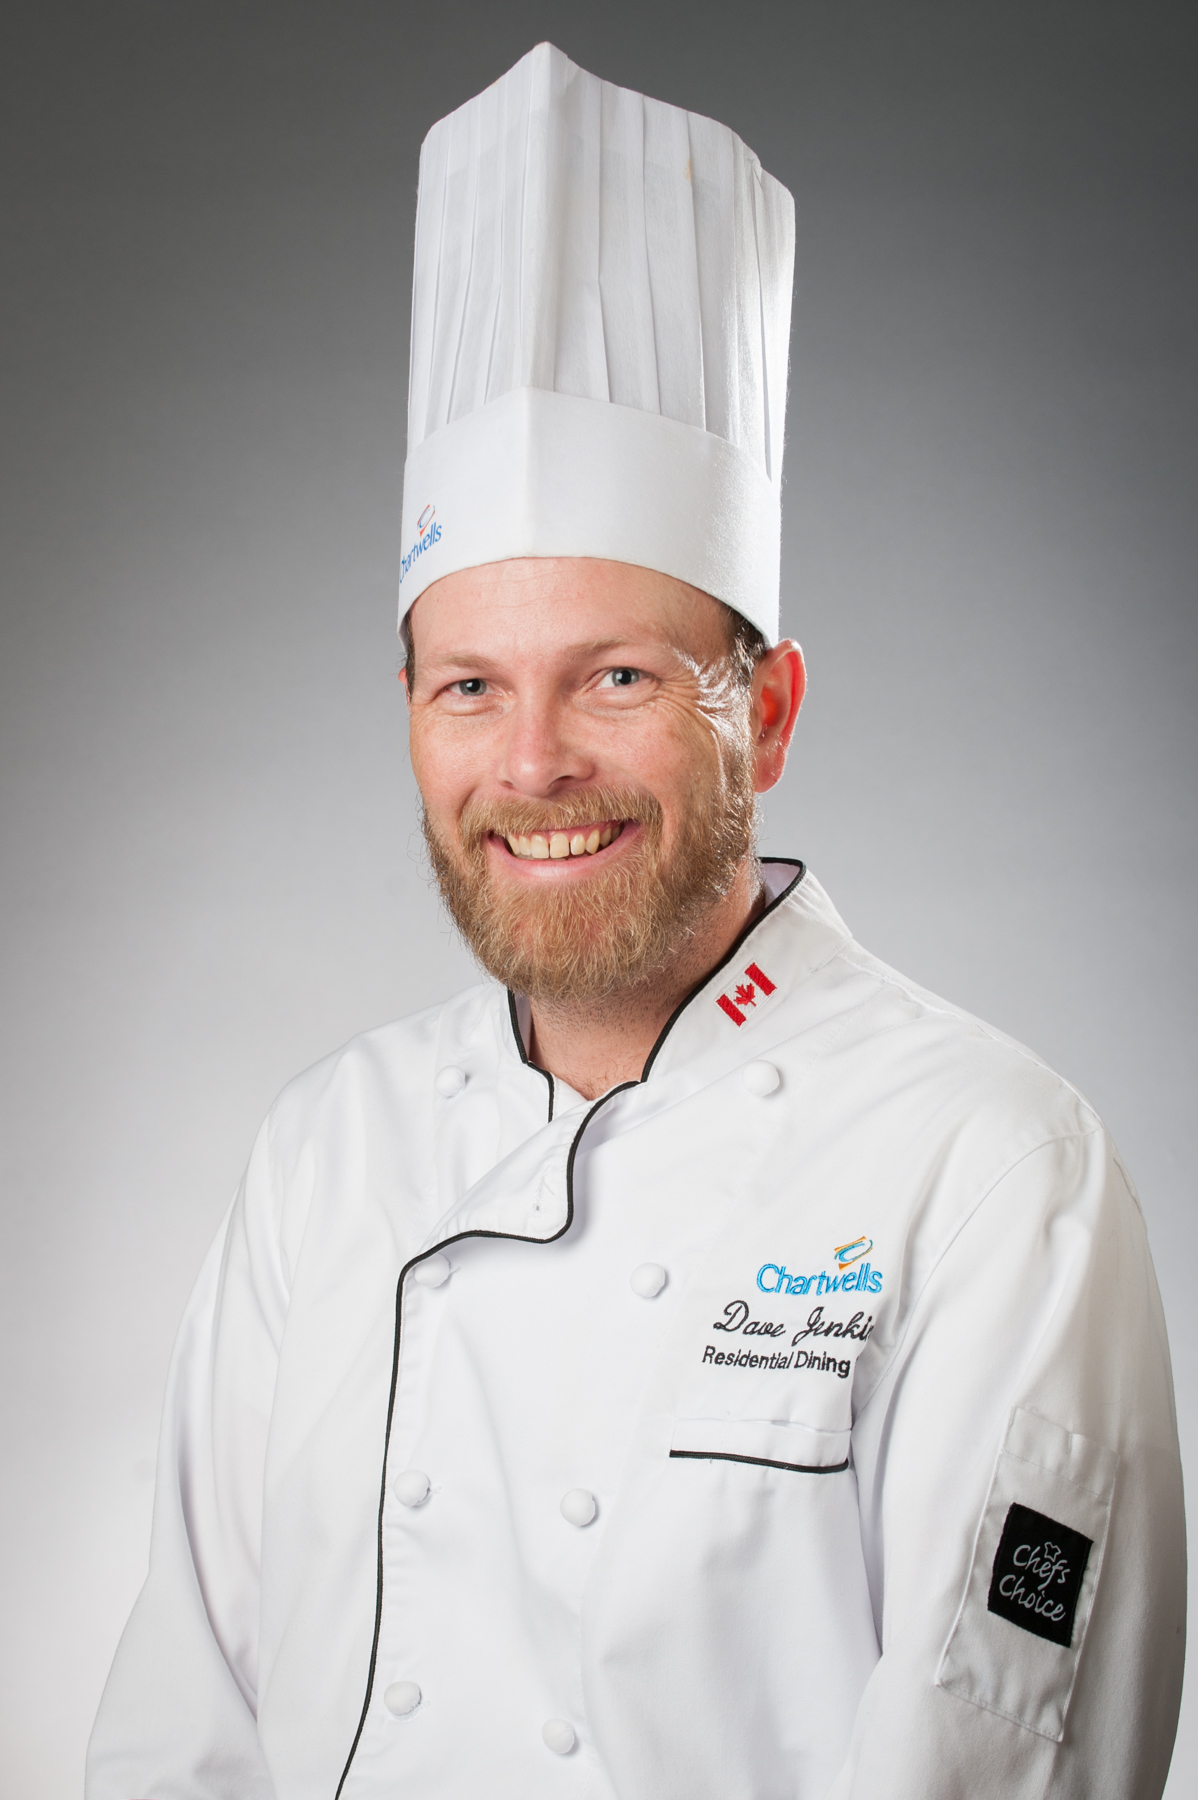 David Jenkins - Executive Chef